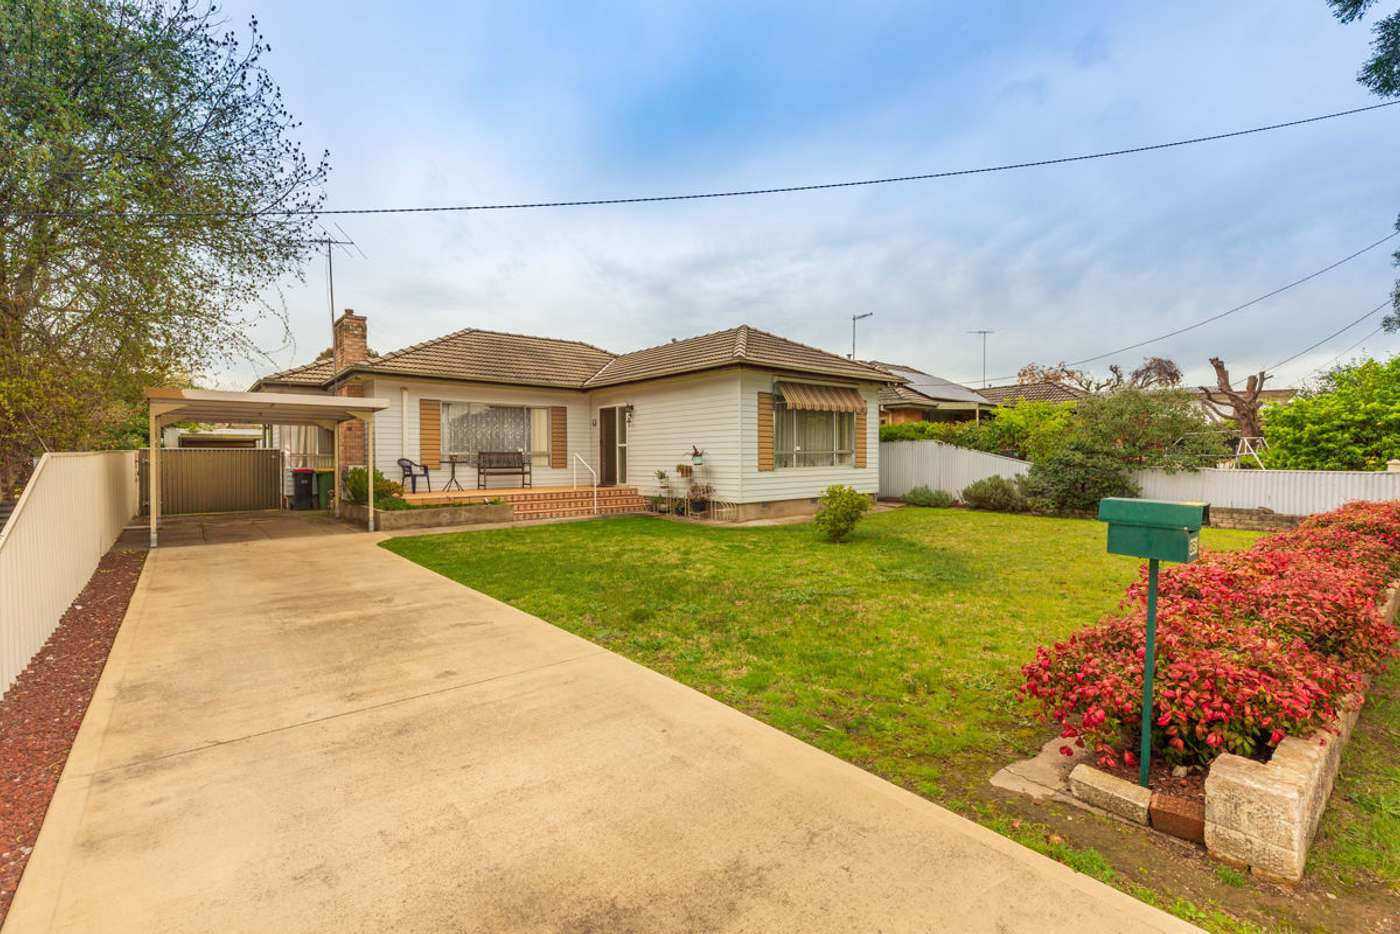 Main view of Homely house listing, 351 Parnall St, Lavington NSW 2641